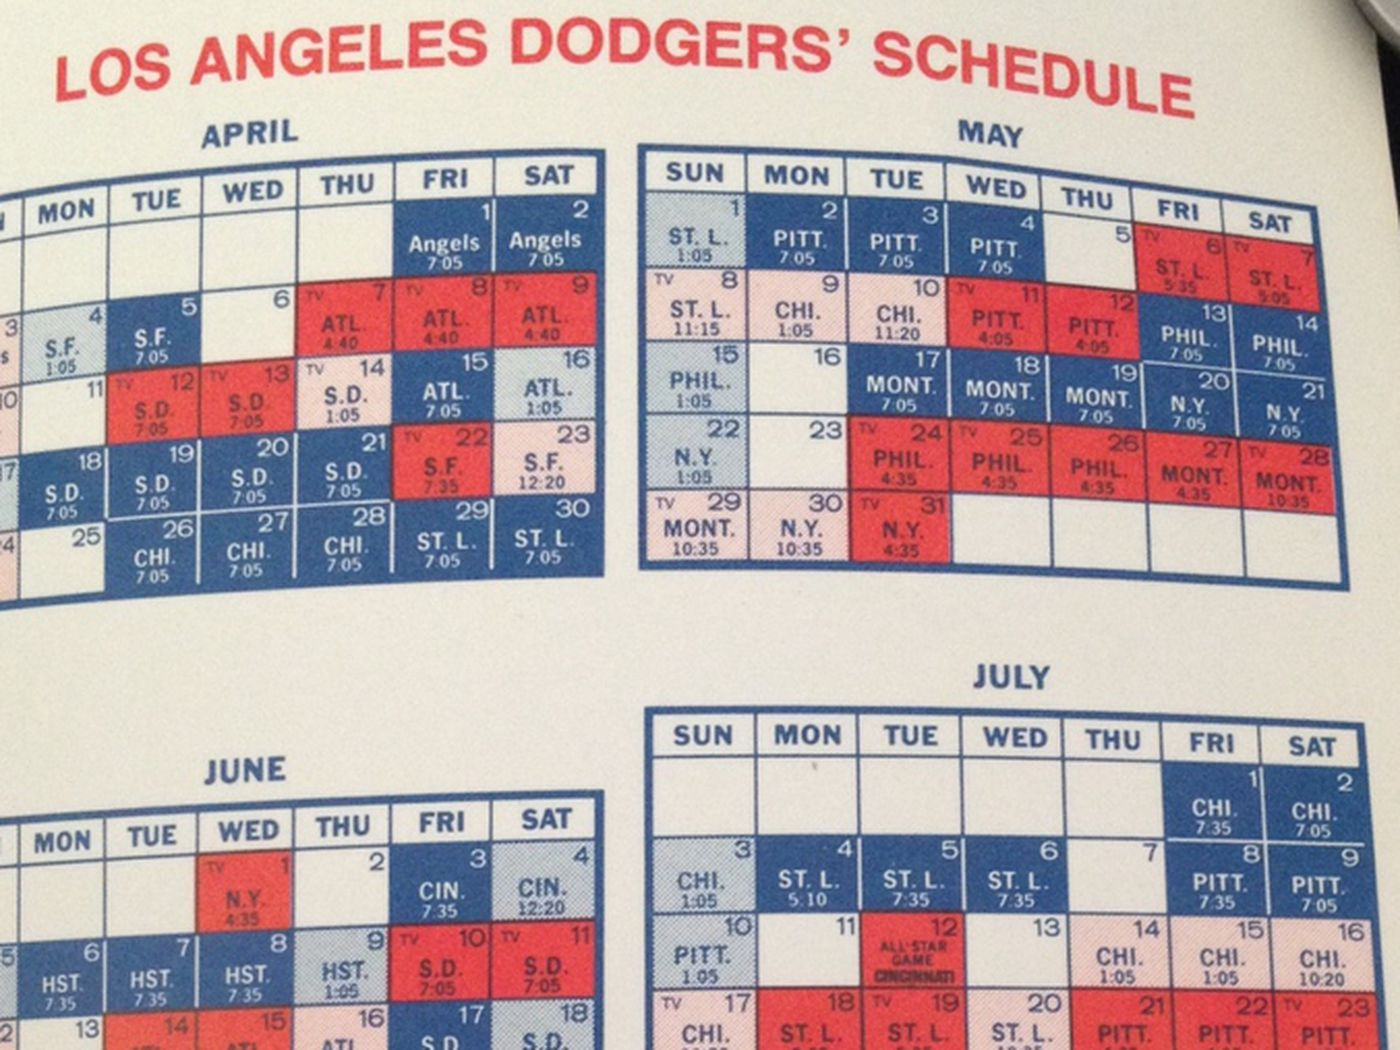 dodgers tv schedule, now and then - true blue la